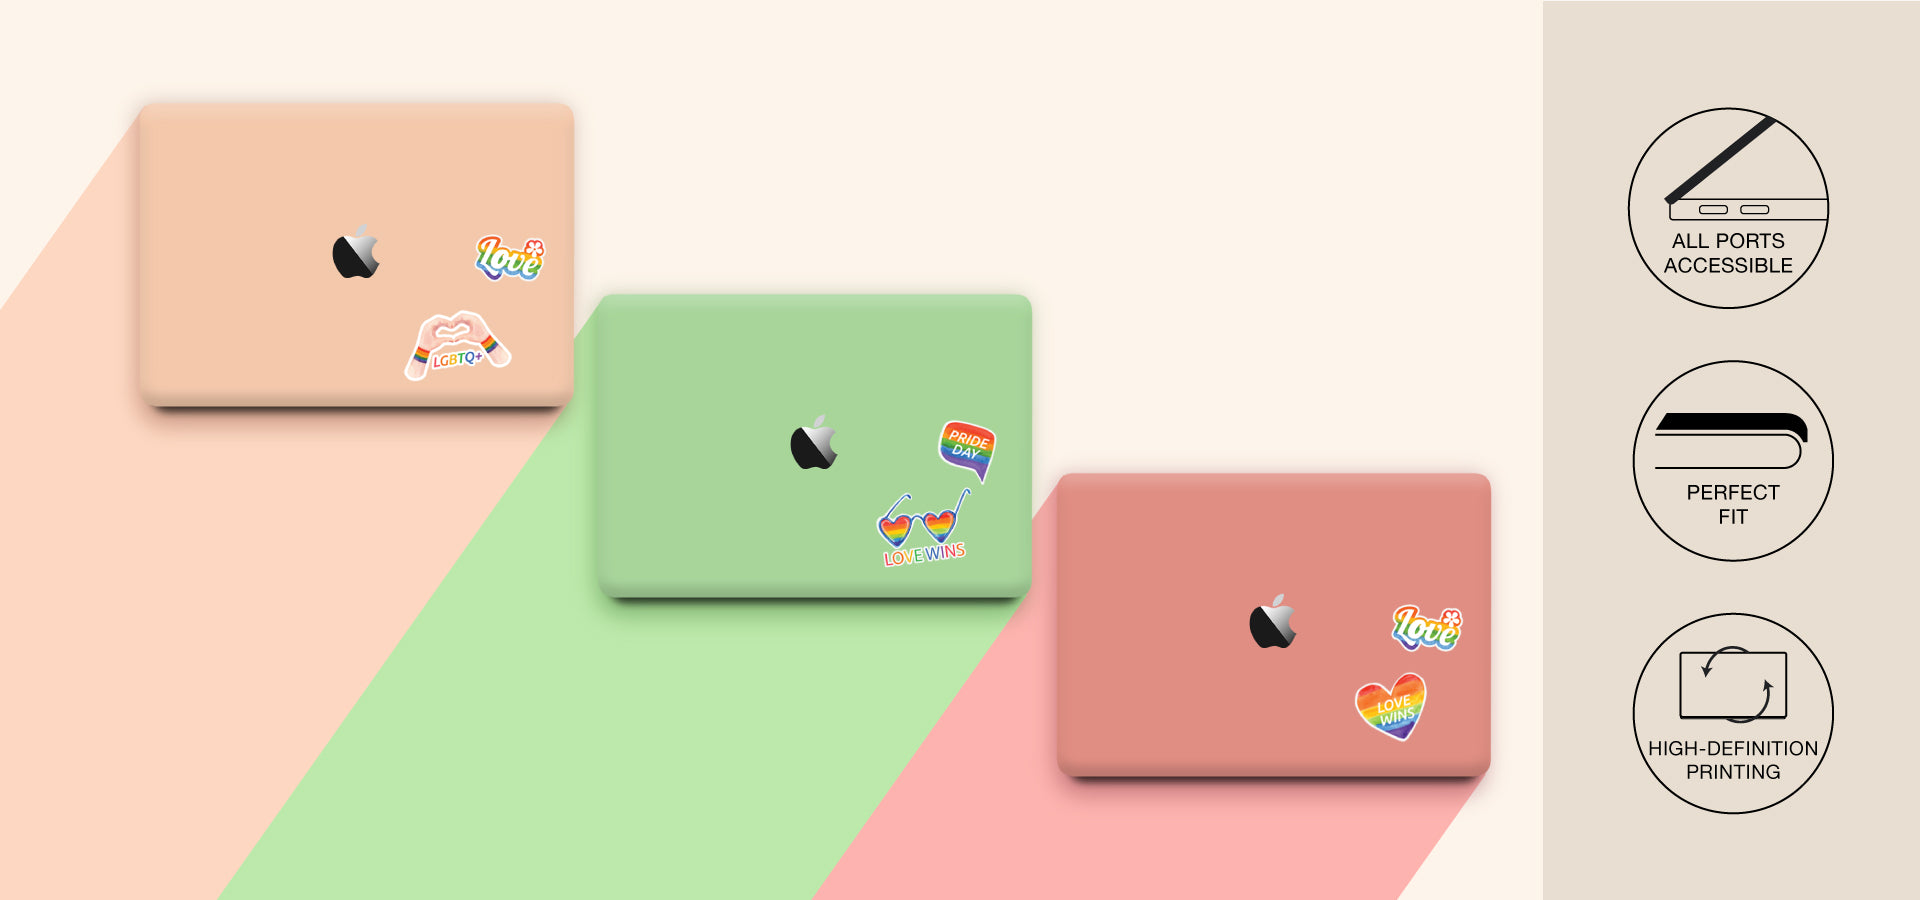 stickers on Macbook cases in pink and green colors